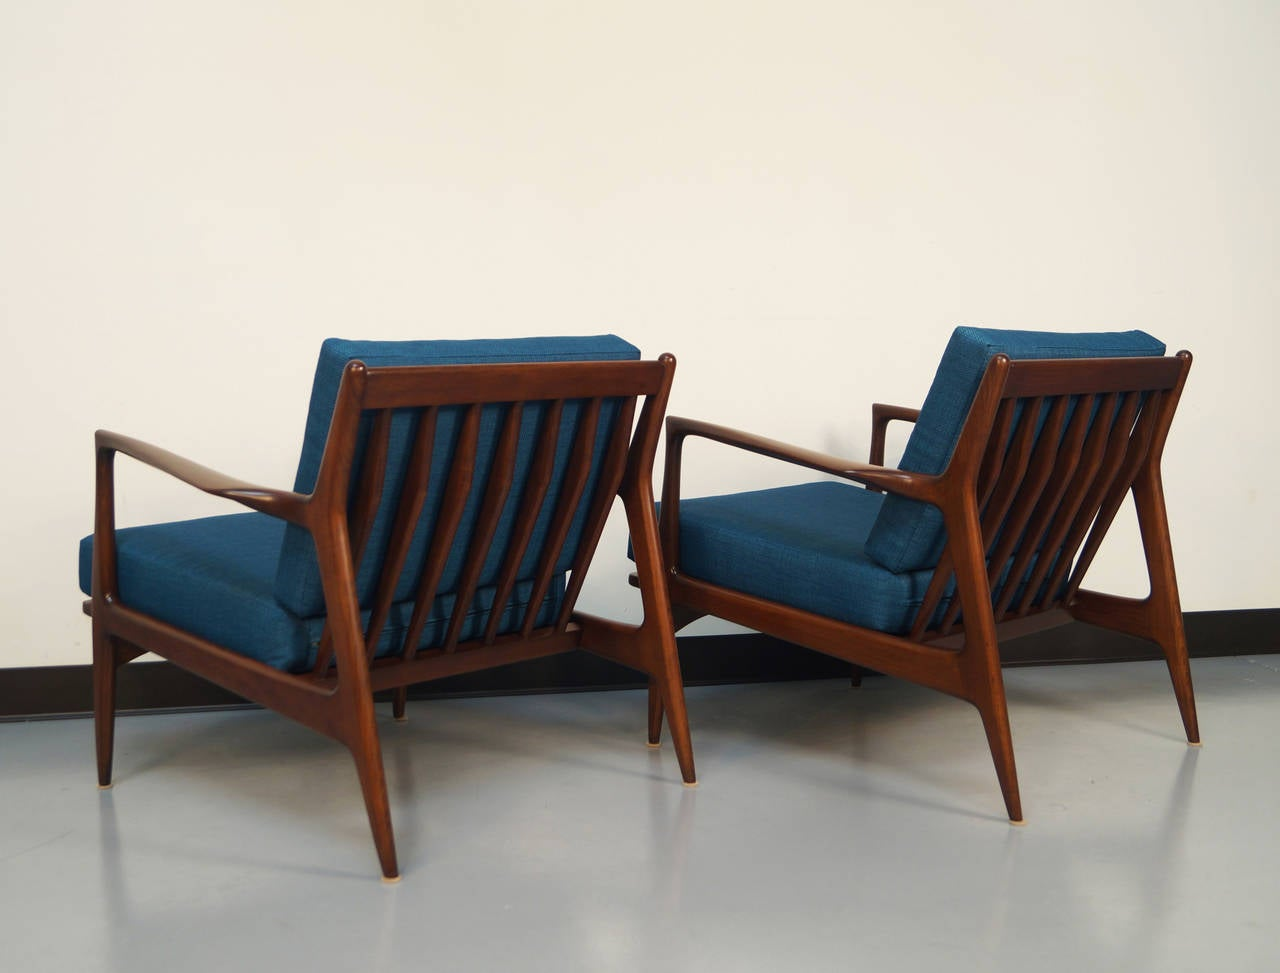 danish modern lounge chairs by ib kofod larsen at 1stdibs. Black Bedroom Furniture Sets. Home Design Ideas